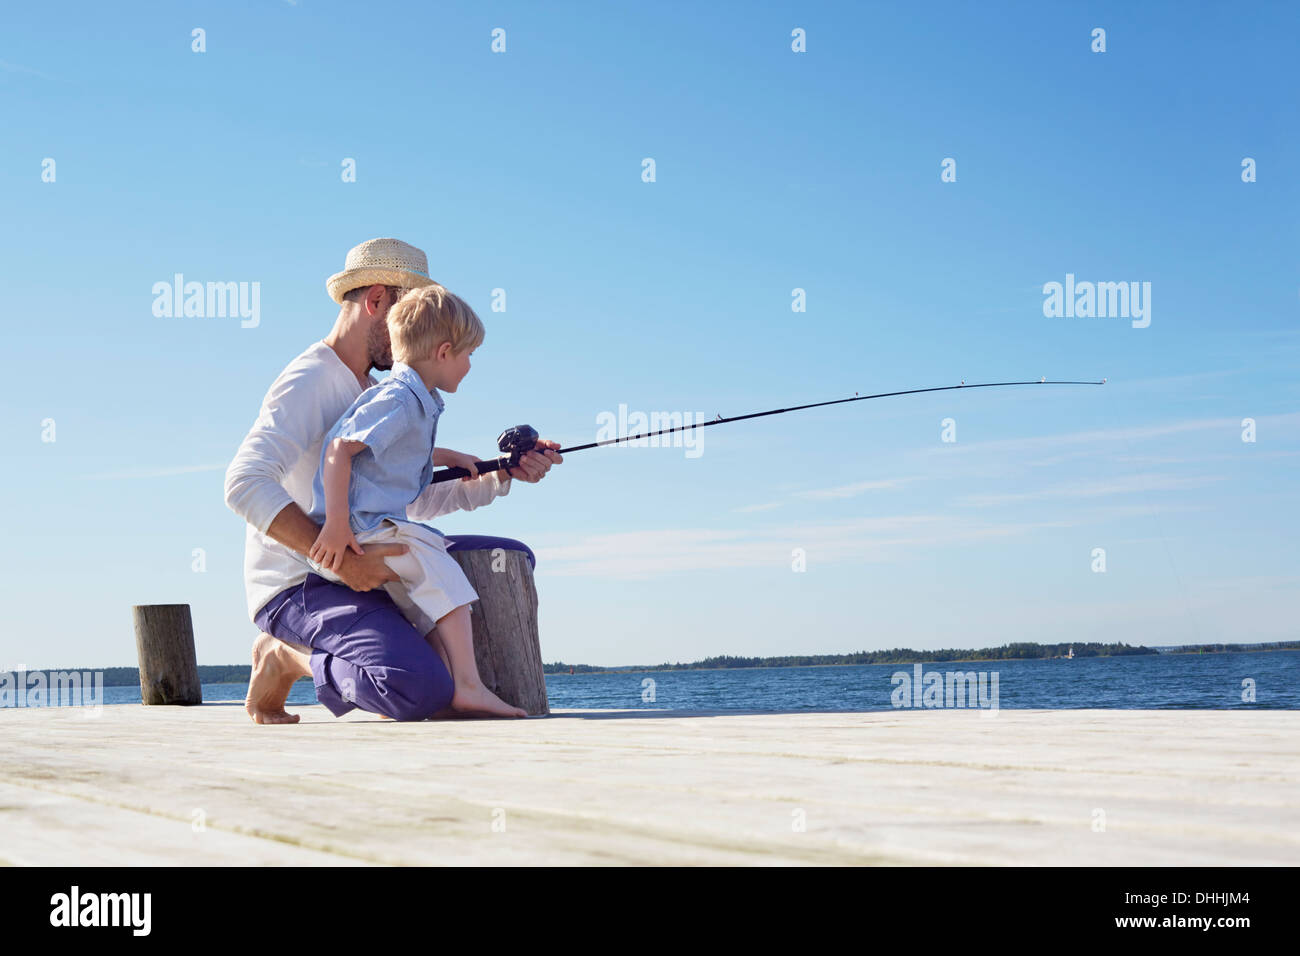 Father and son fishing, Utvalnas, Sweden - Stock Image